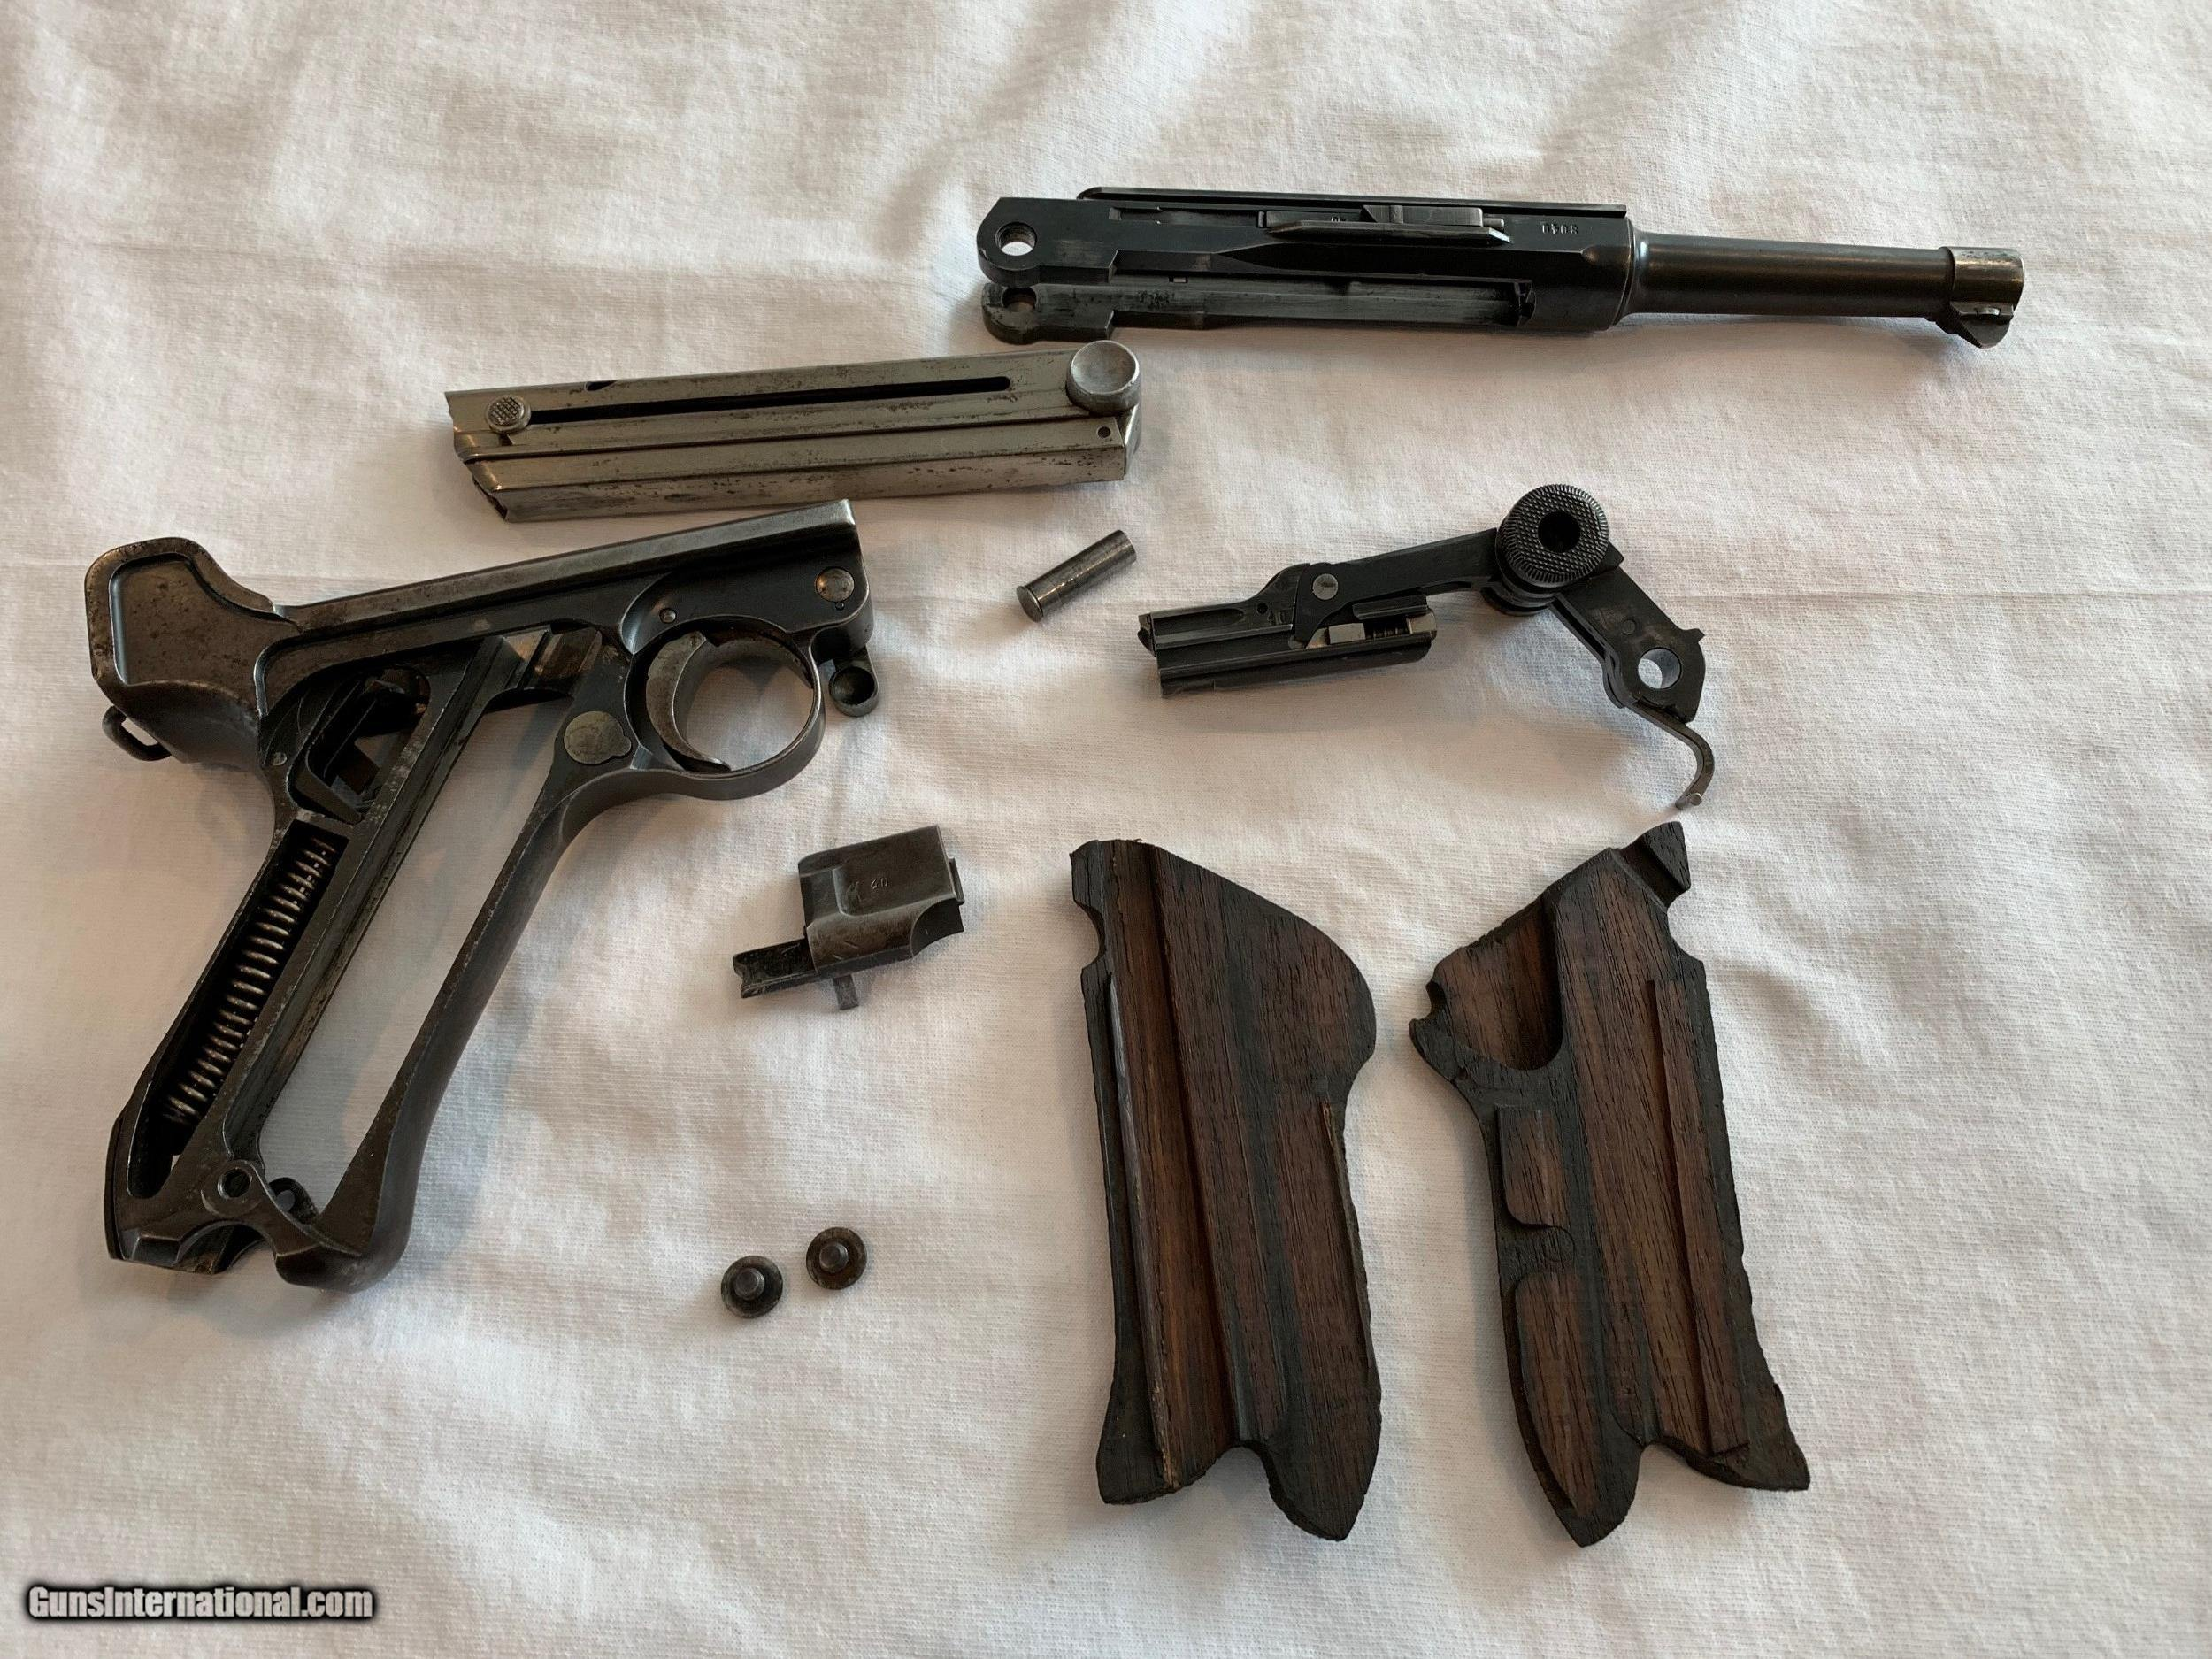 Ammo and Gun Collector Luger Kruger and Ruger A Tale of 3 Pistols